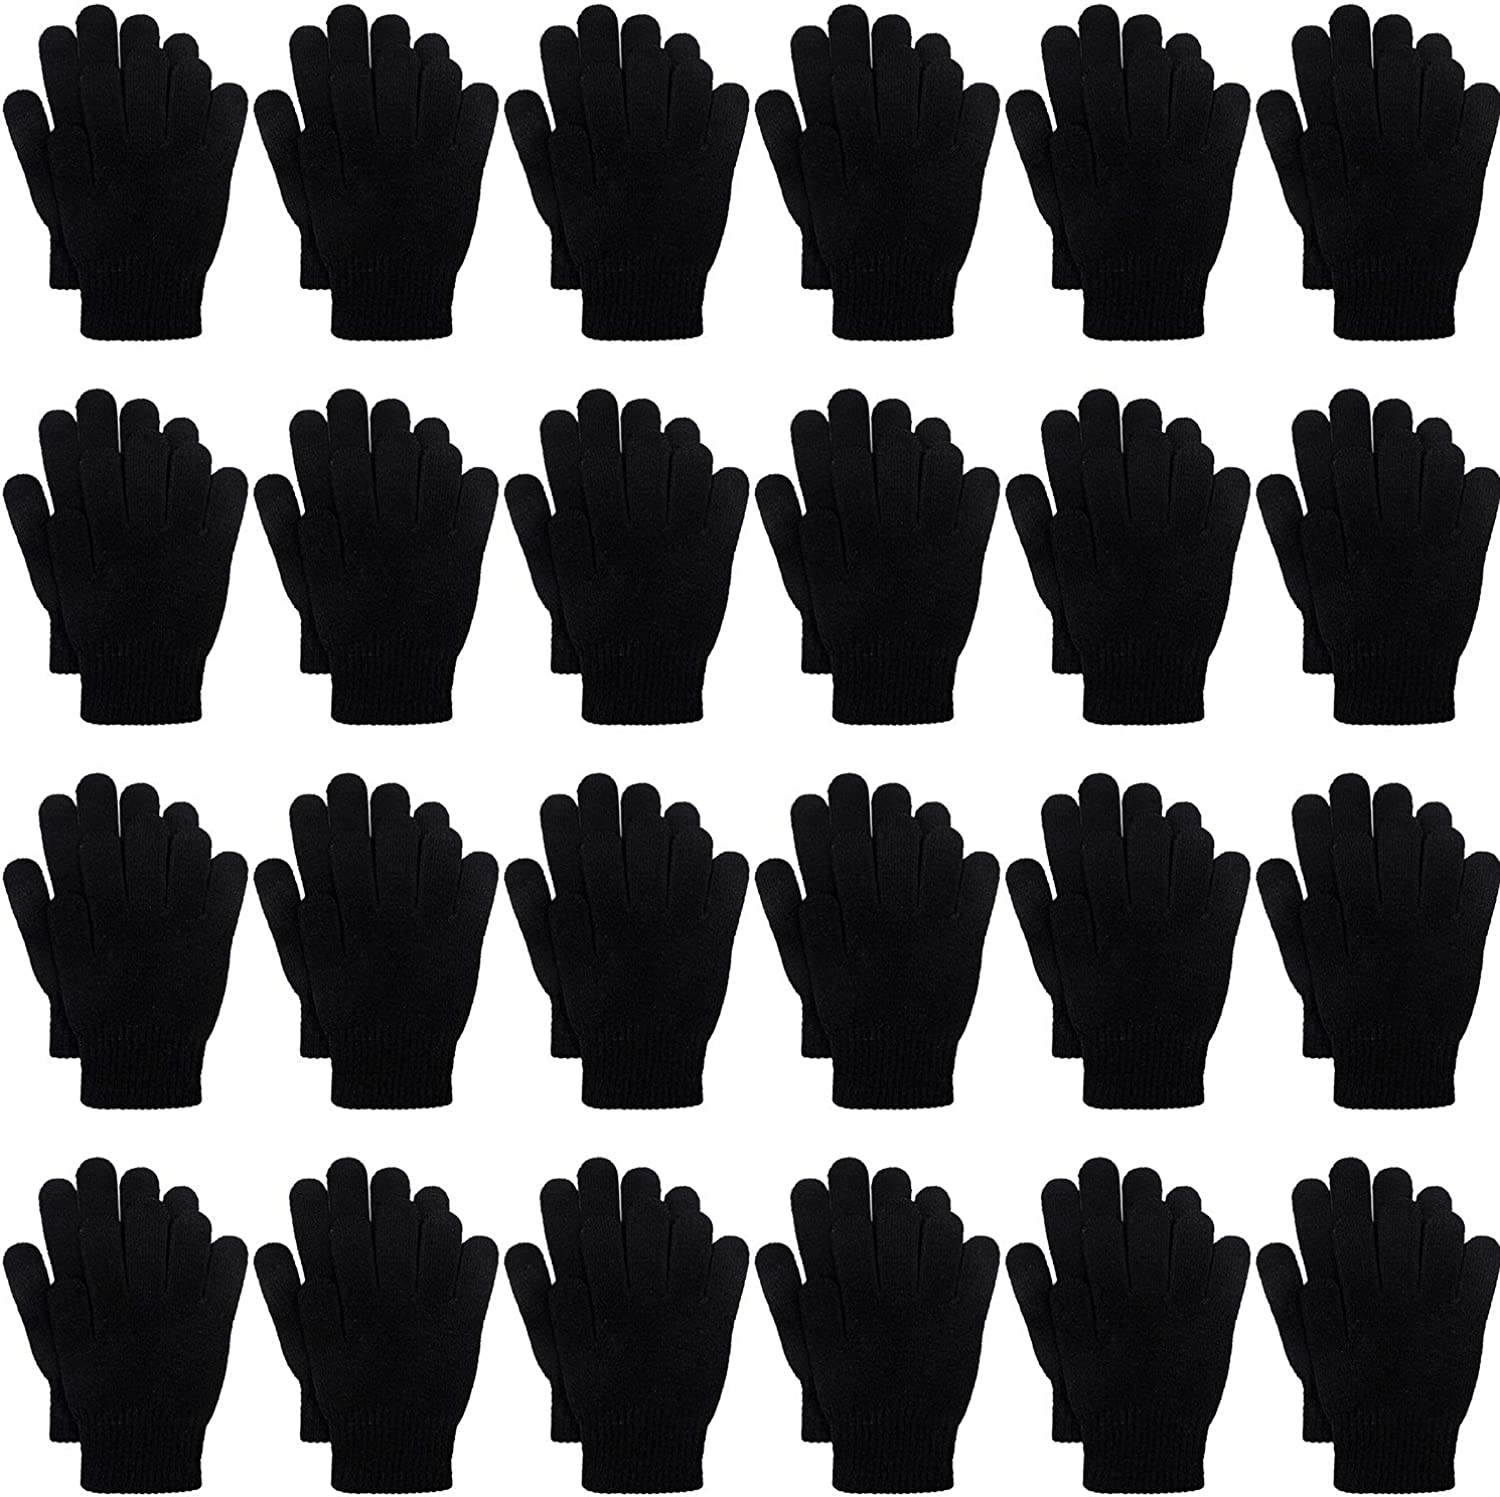 Cooraby 24 Pairs Kids Gloves Winter Magic Gloves Warm Knitted Stretchy Full Fingers Gloves